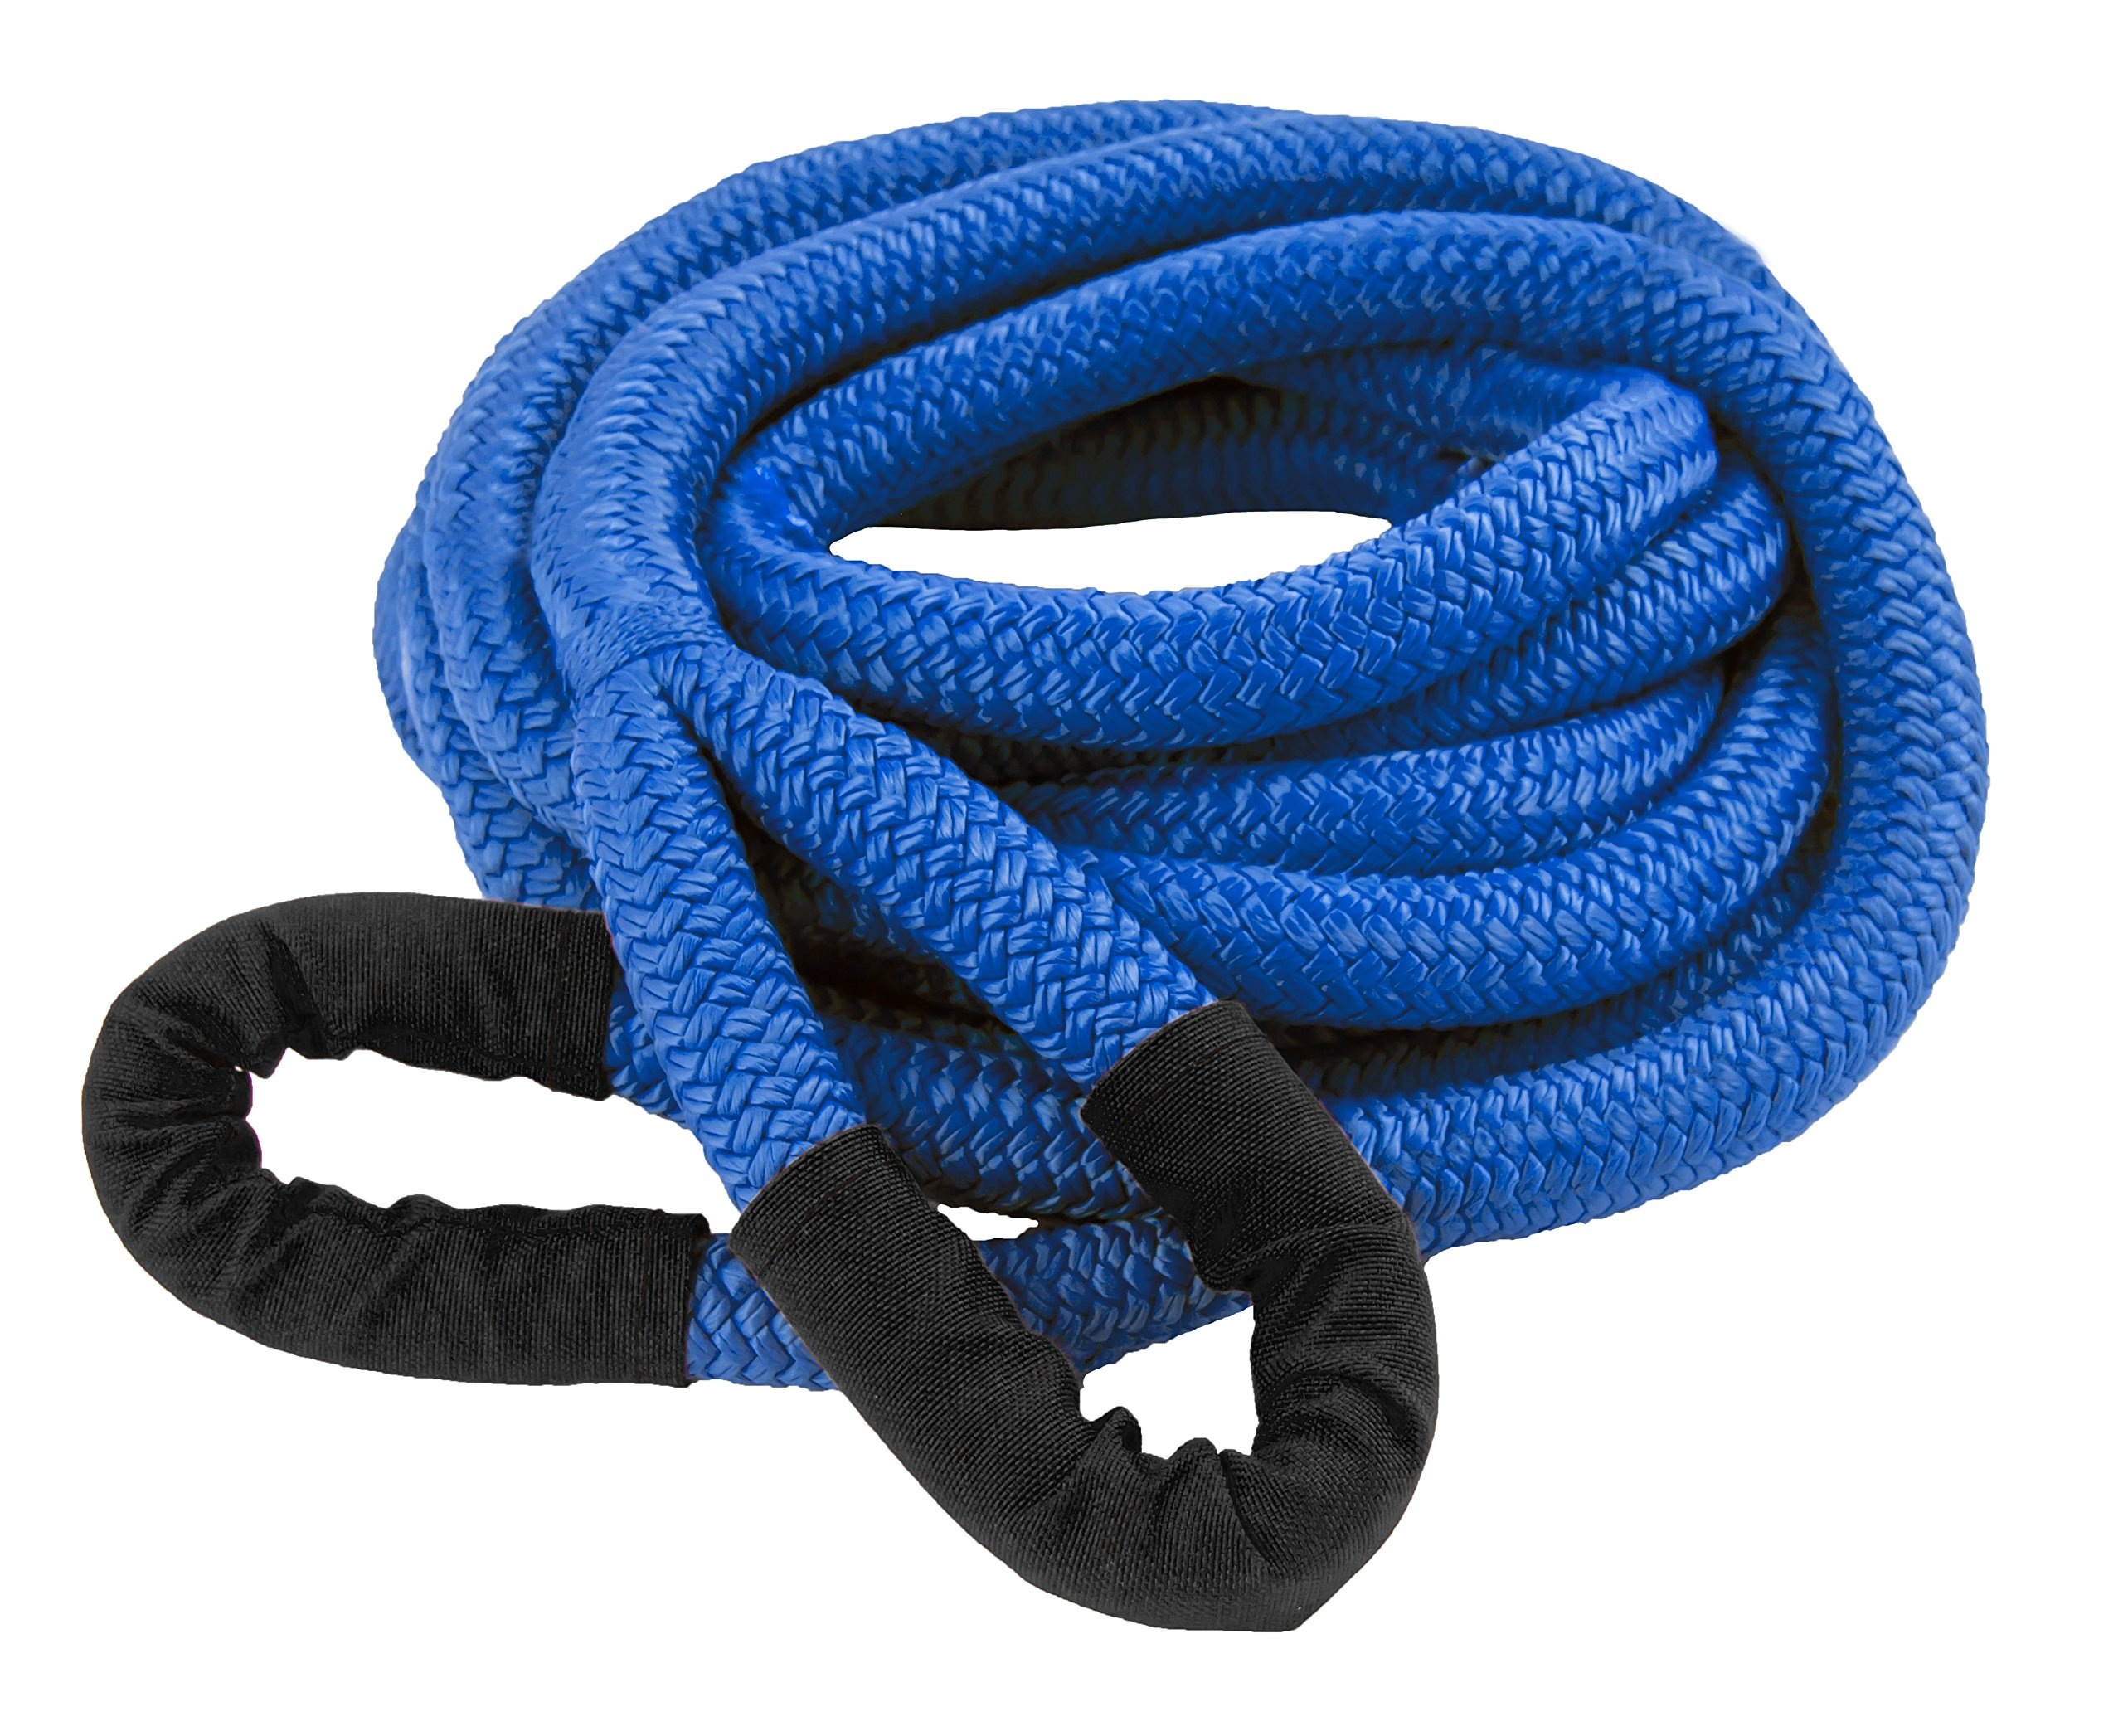 DitchPig 447051 Kinetic Energy Vehicle Recovery Double Nylon Braided Rope with Tote Bag, 1/2'' x 20' by Mibro